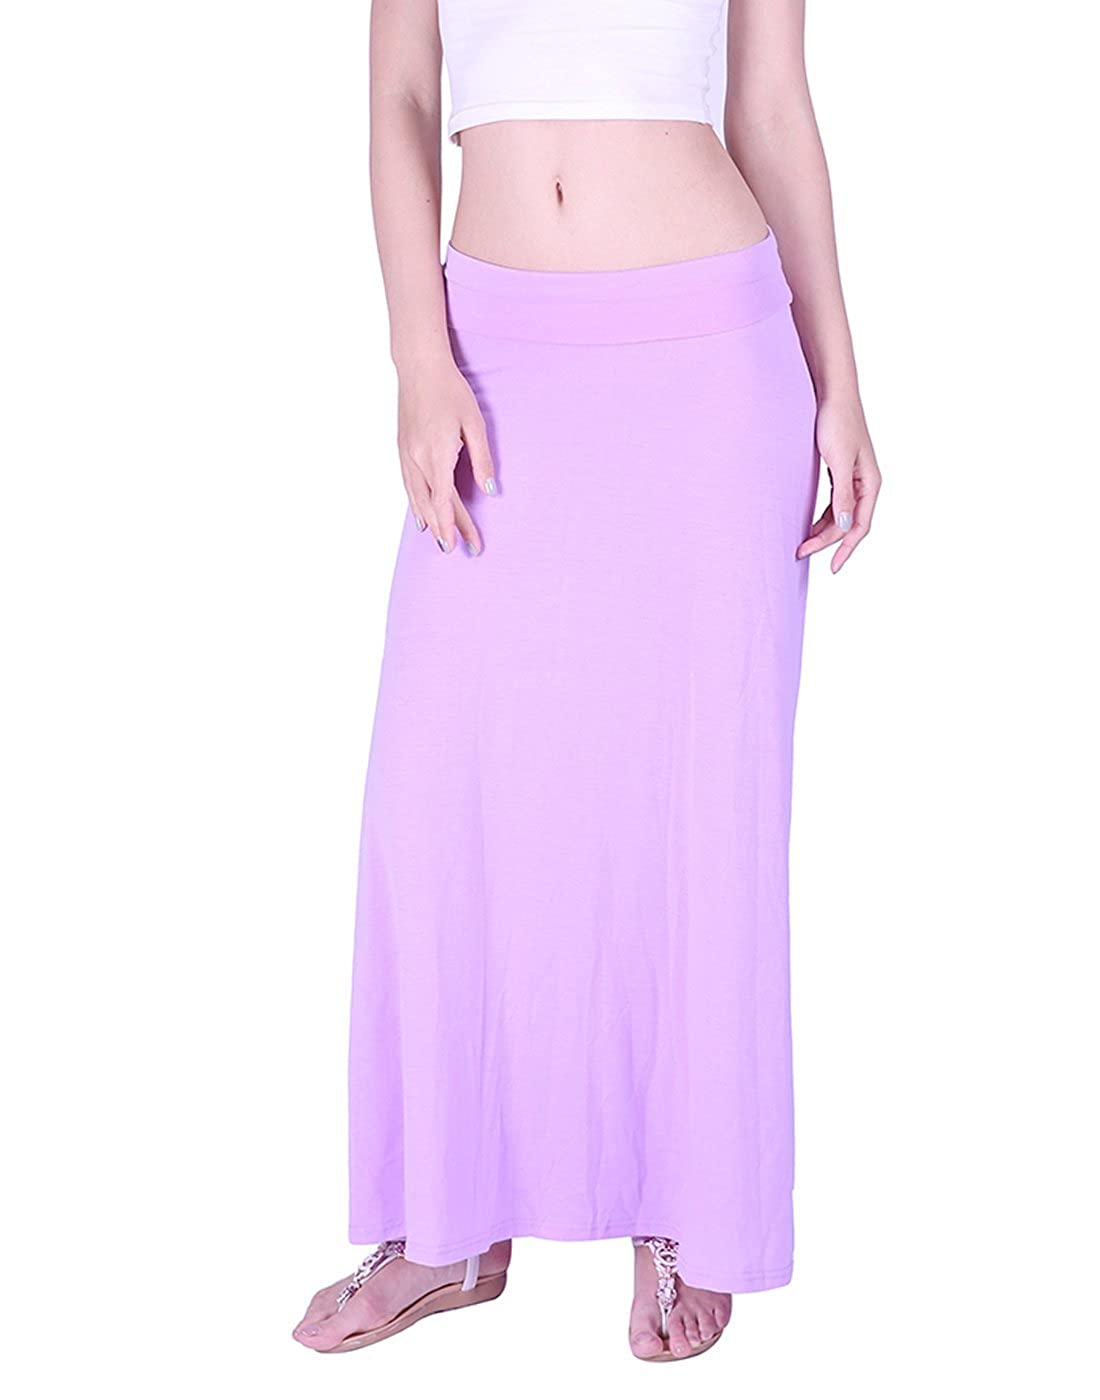 """fff0540db One size recommended for women with a 26""""-28"""" waist (small or medium)  Bright colors are great for spring, ..."""